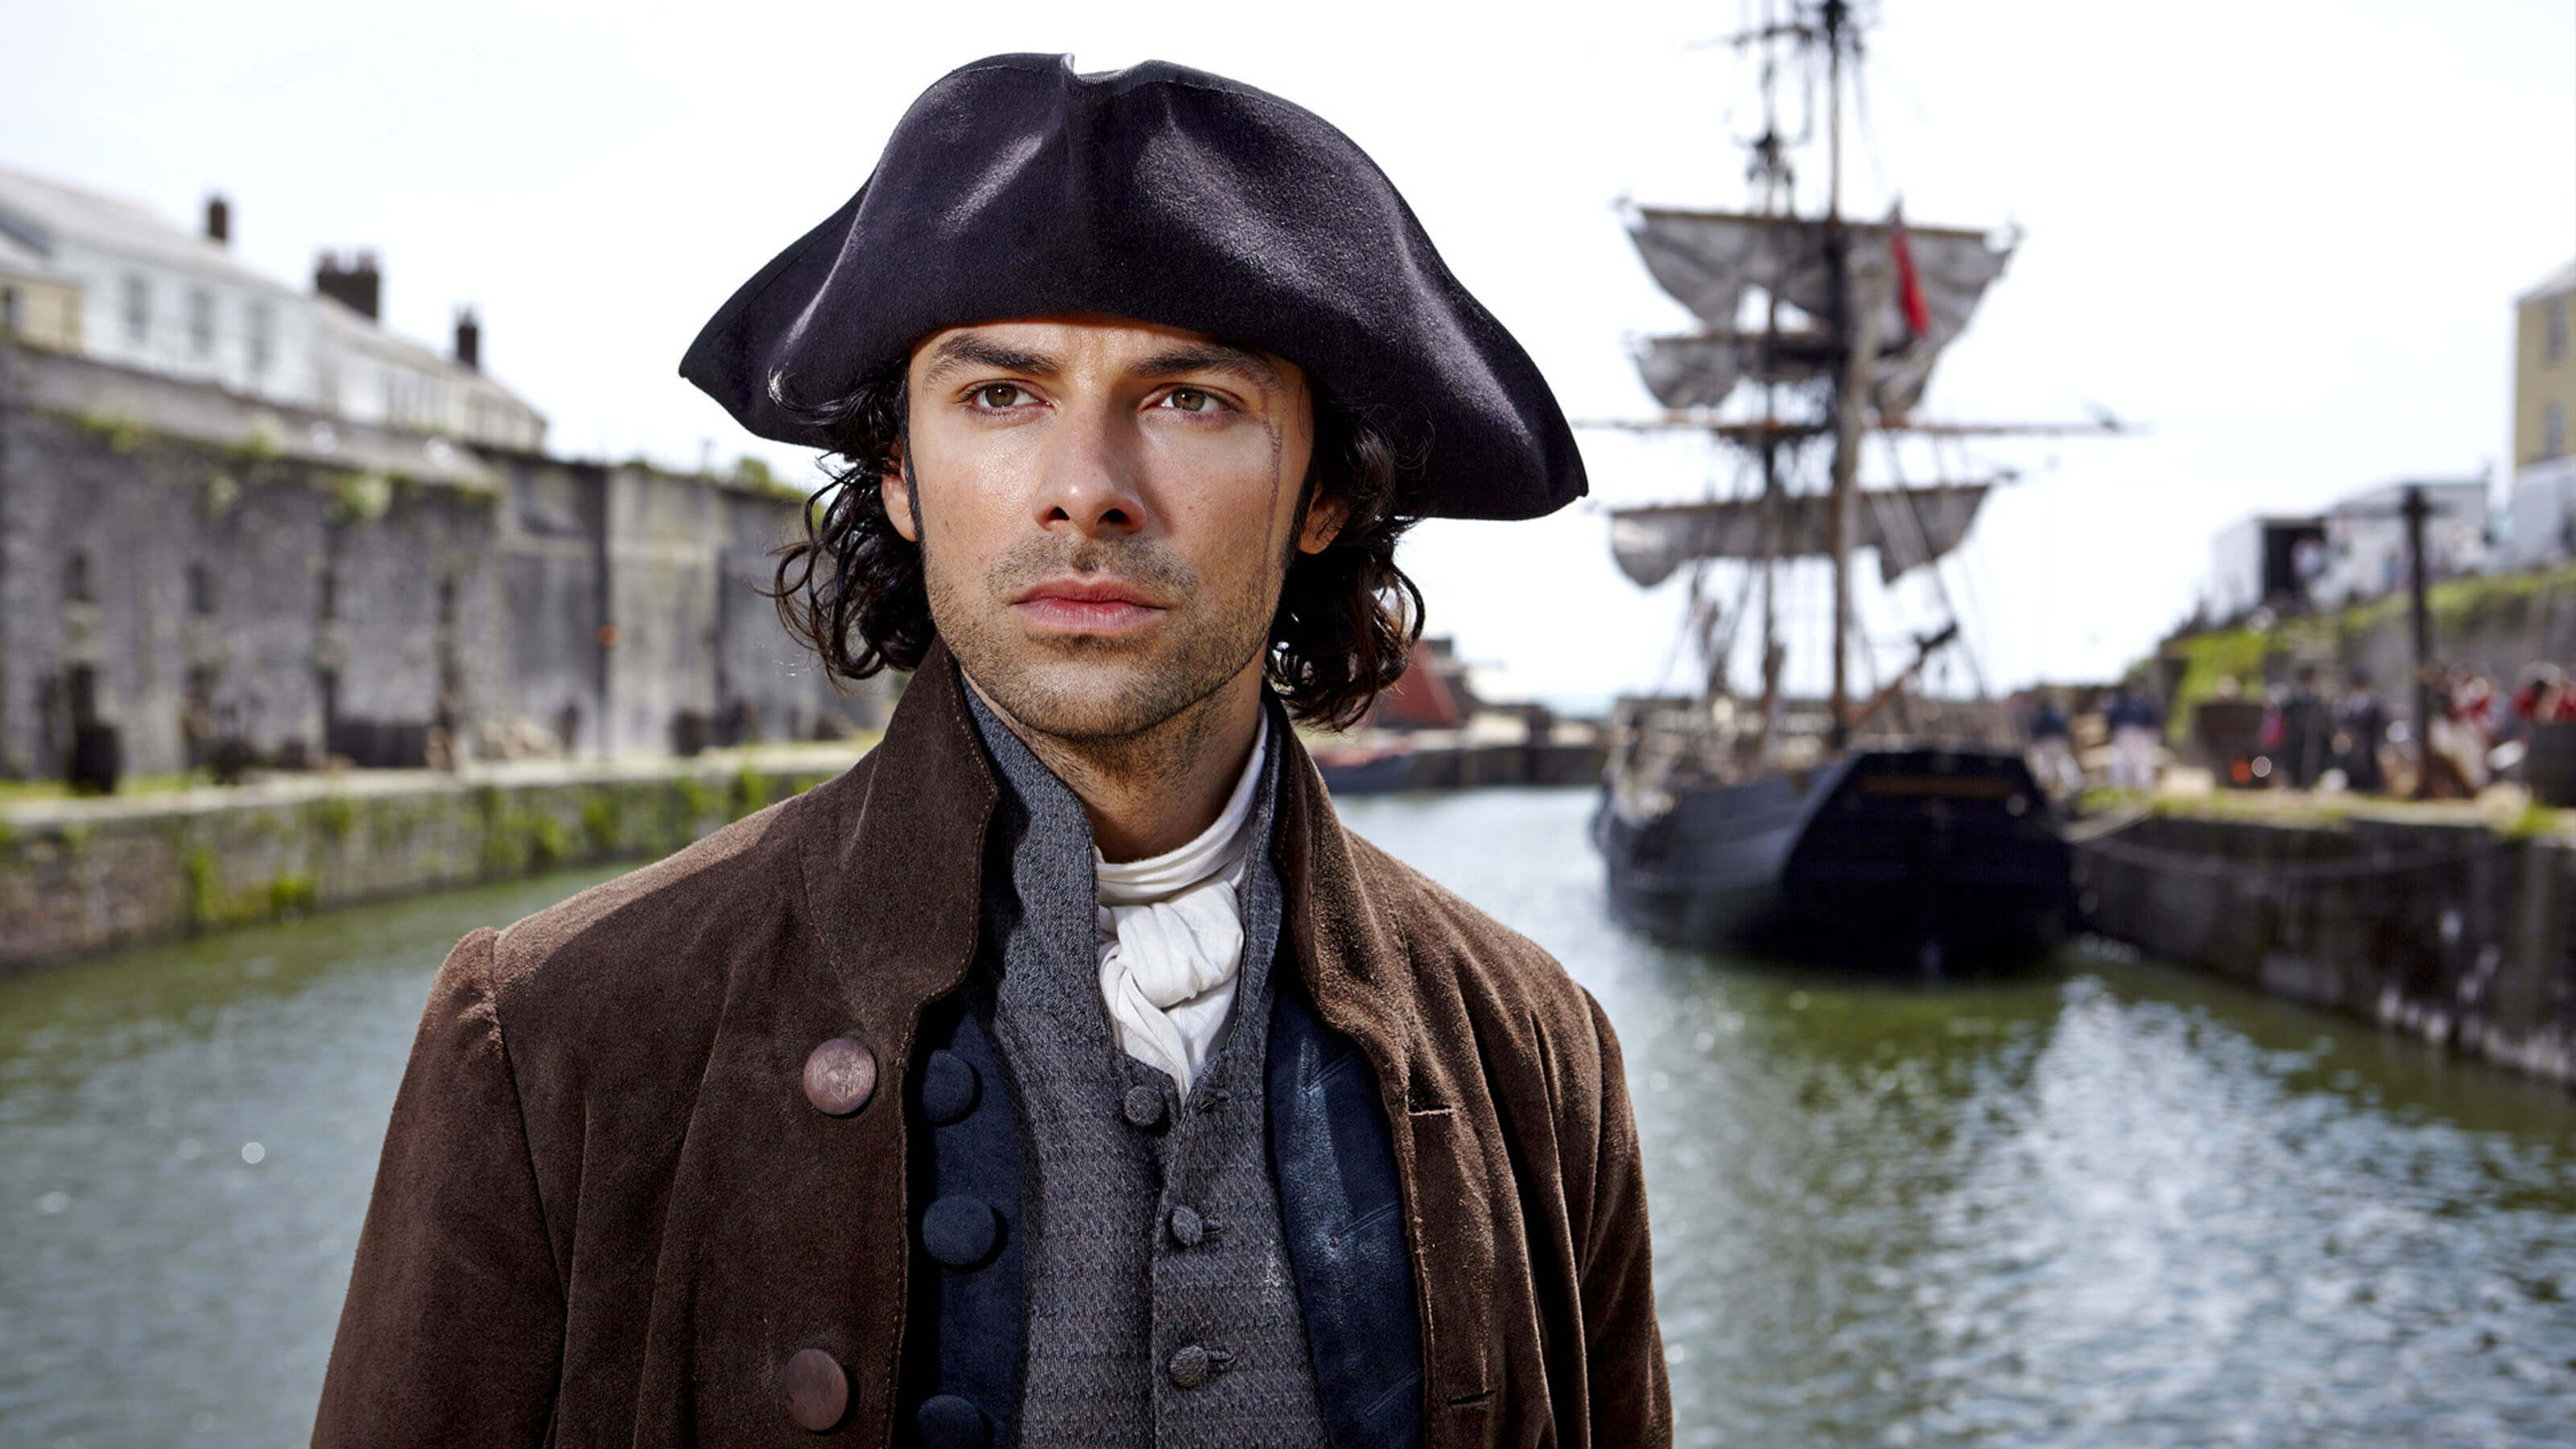 Ross Poldark: Narcissism in TV and movies